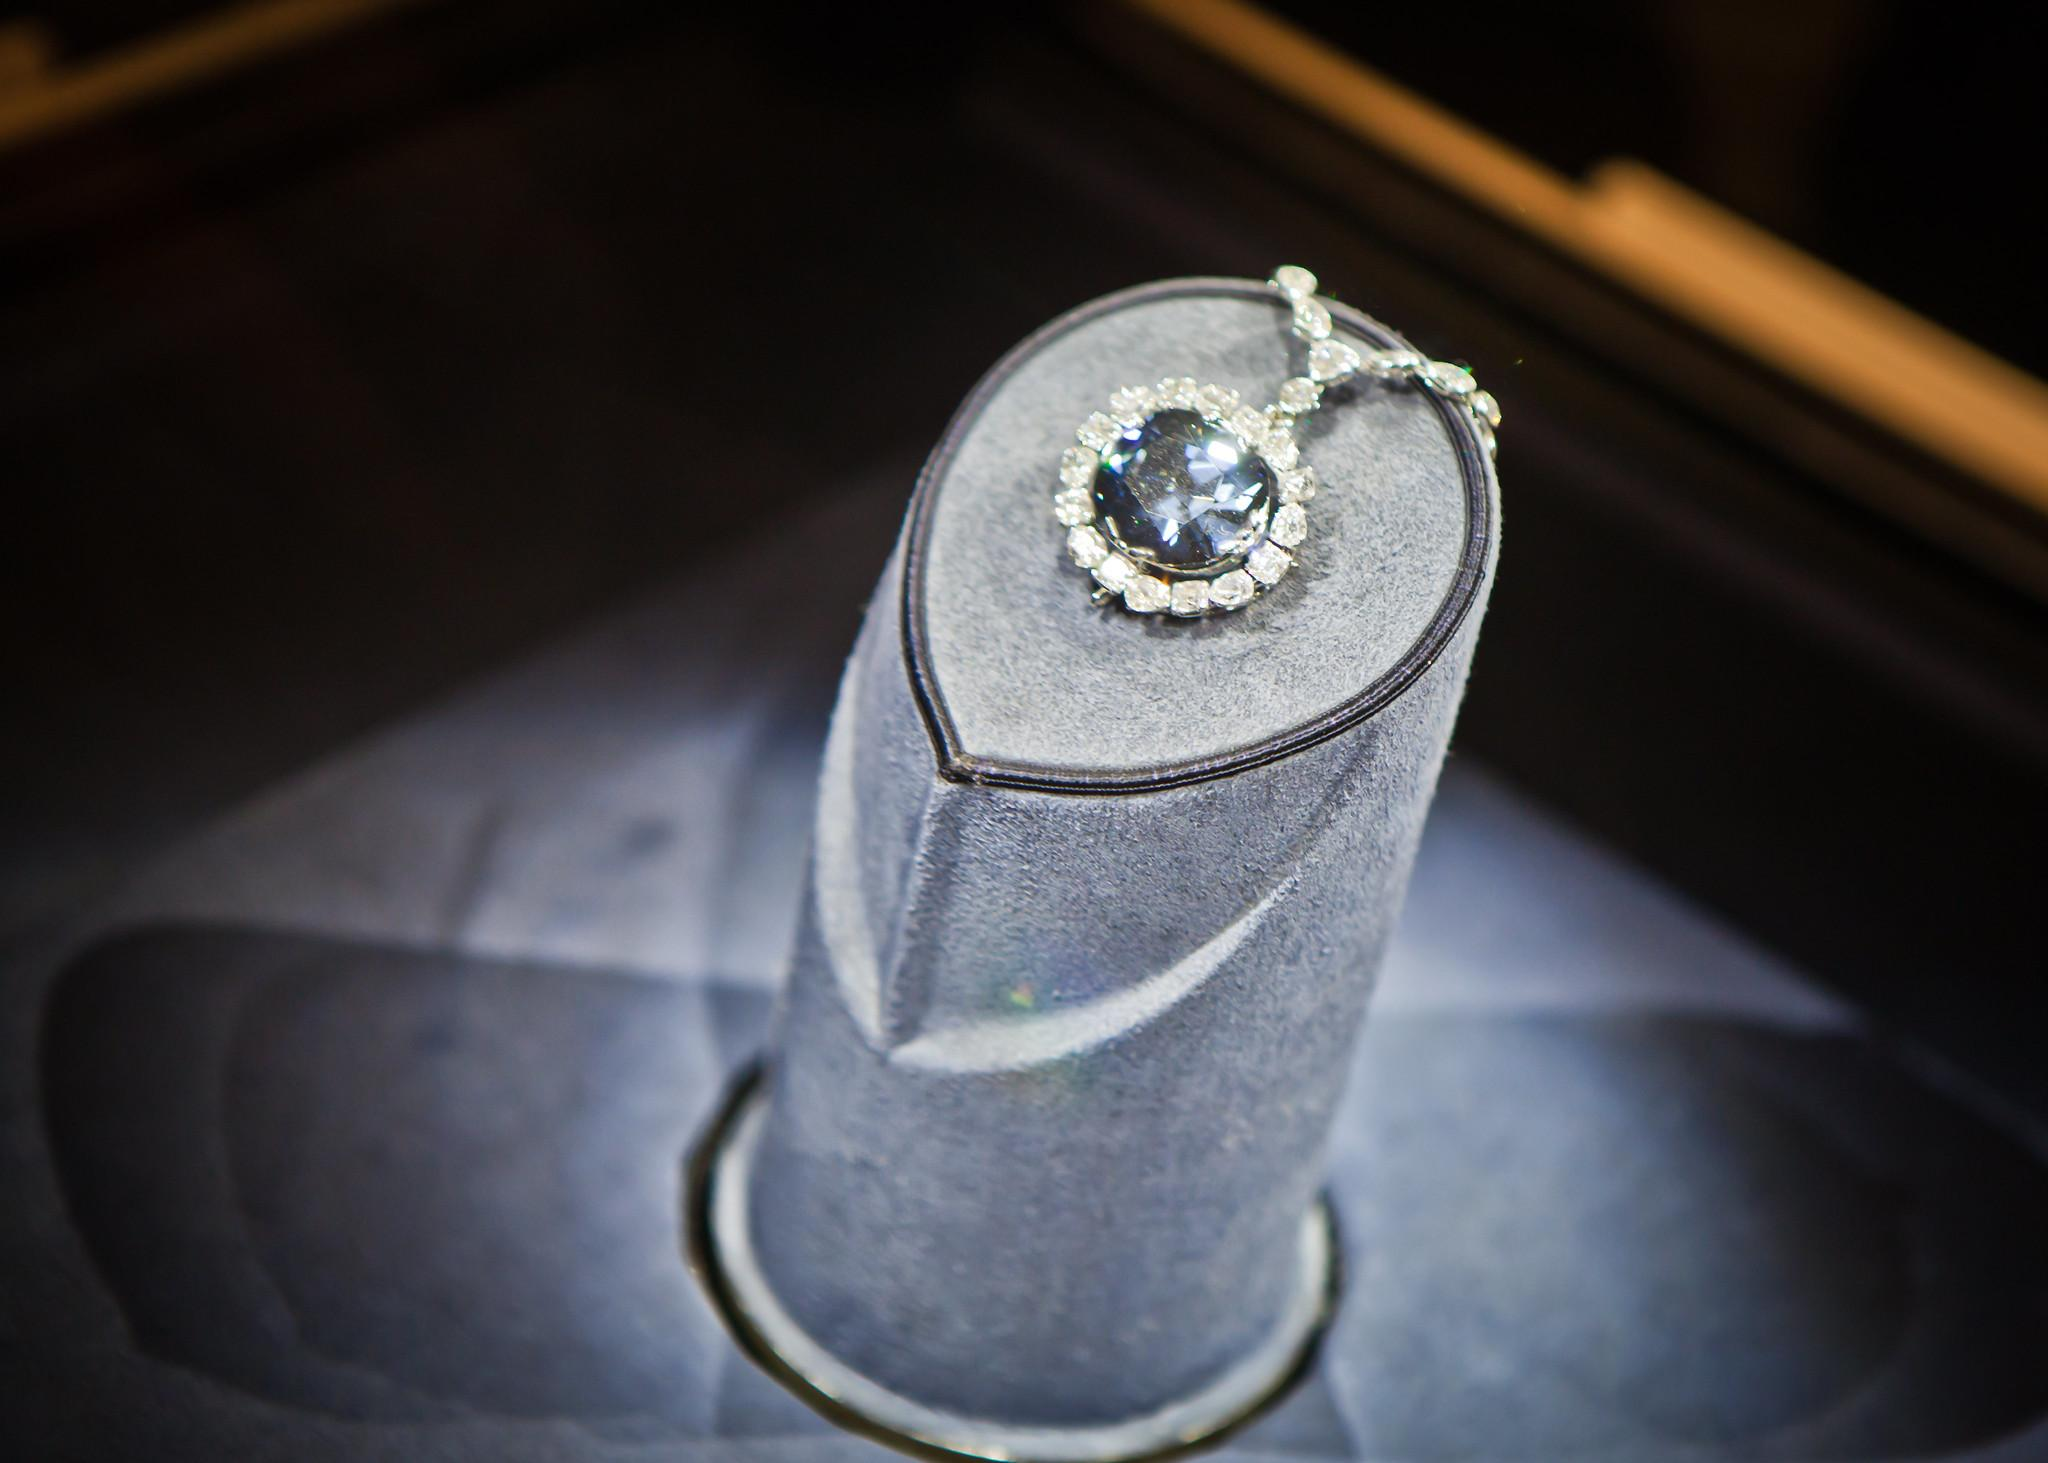 The Hope Diamond Jessie Hodge Flickr CC Gem A Blog Famous Diamonds for Gemmologists Smithsonian